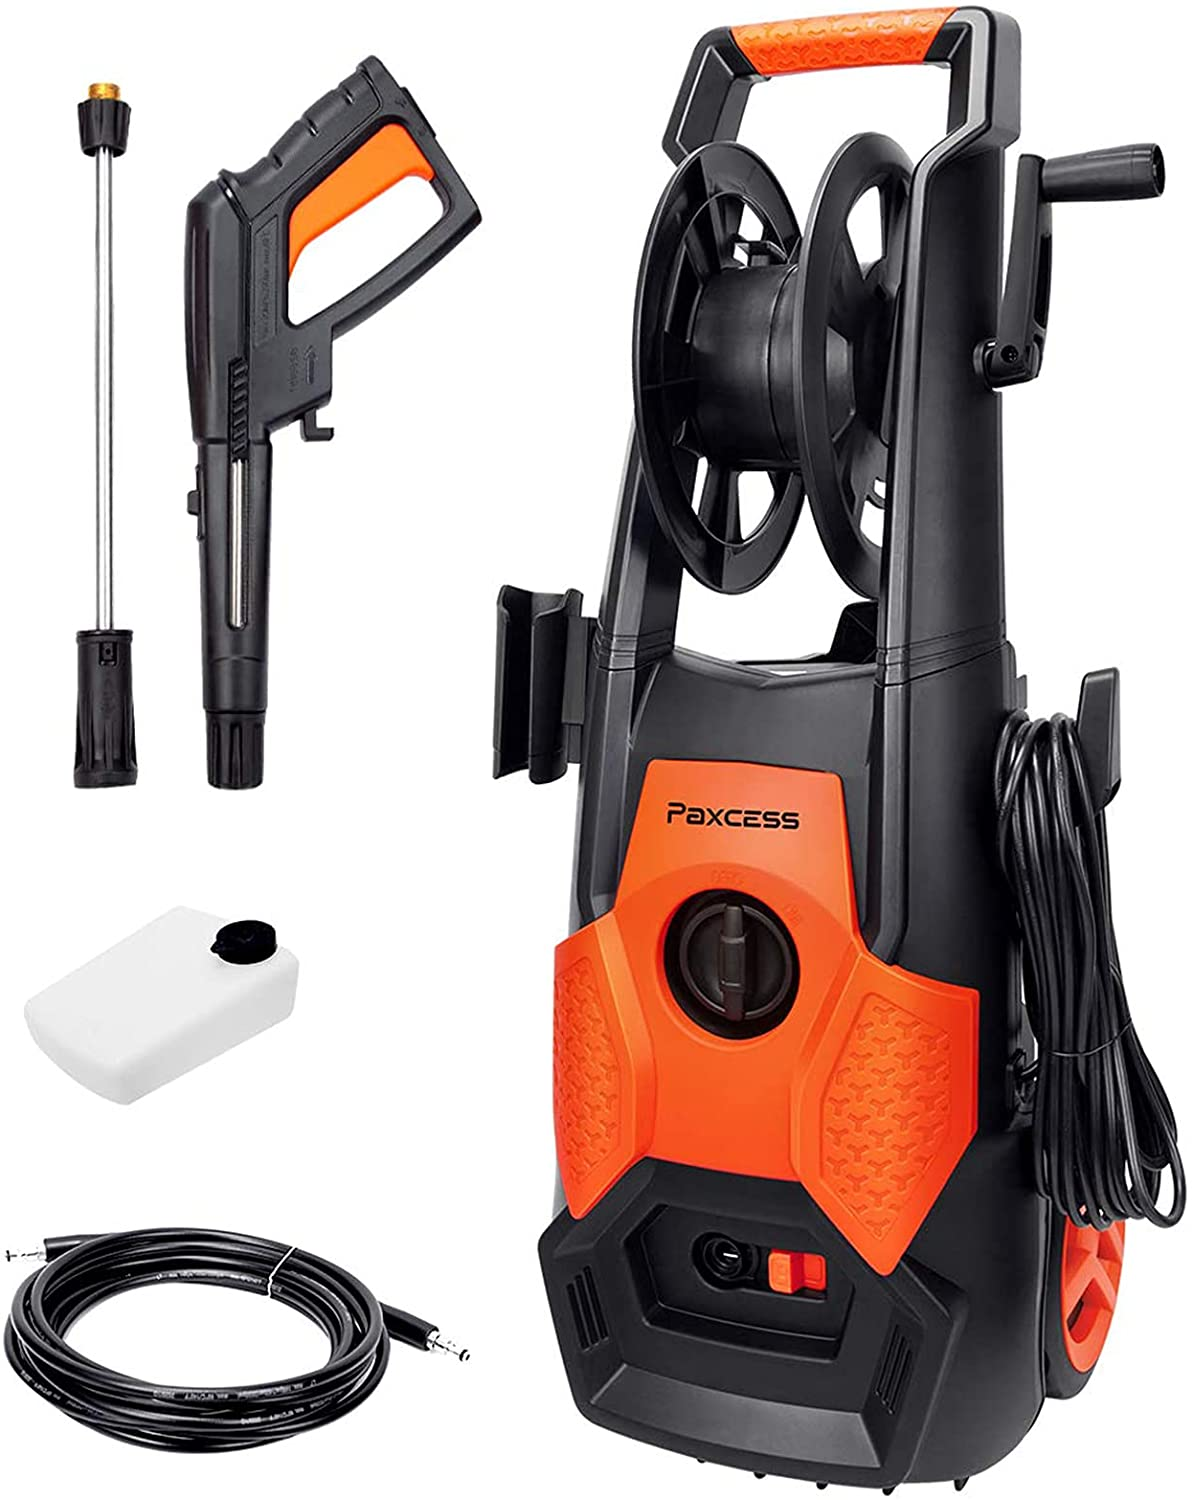 PAXCESS Over item handling Electric Pressure Washer 2150 Regular store GPM PSI 1.85 High